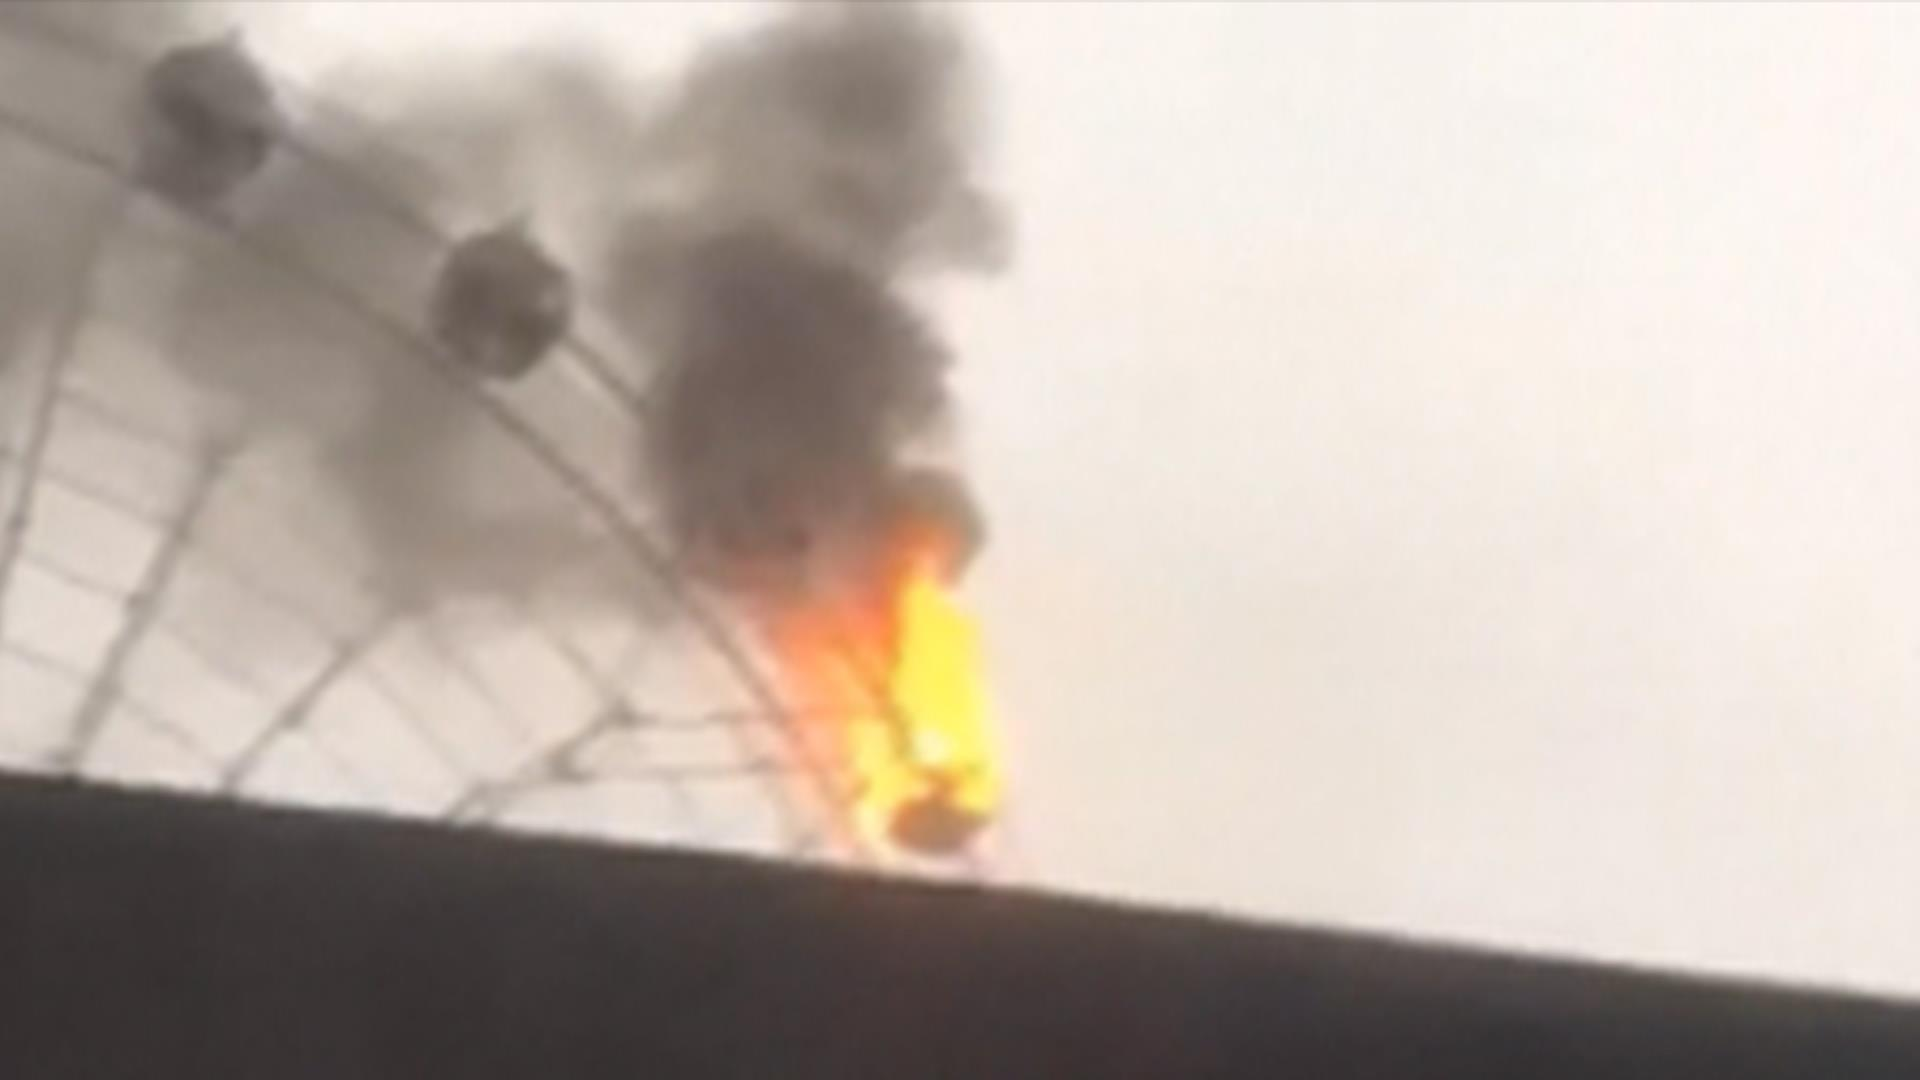 See Fire Engulf Part of Giant Ferris Wheel